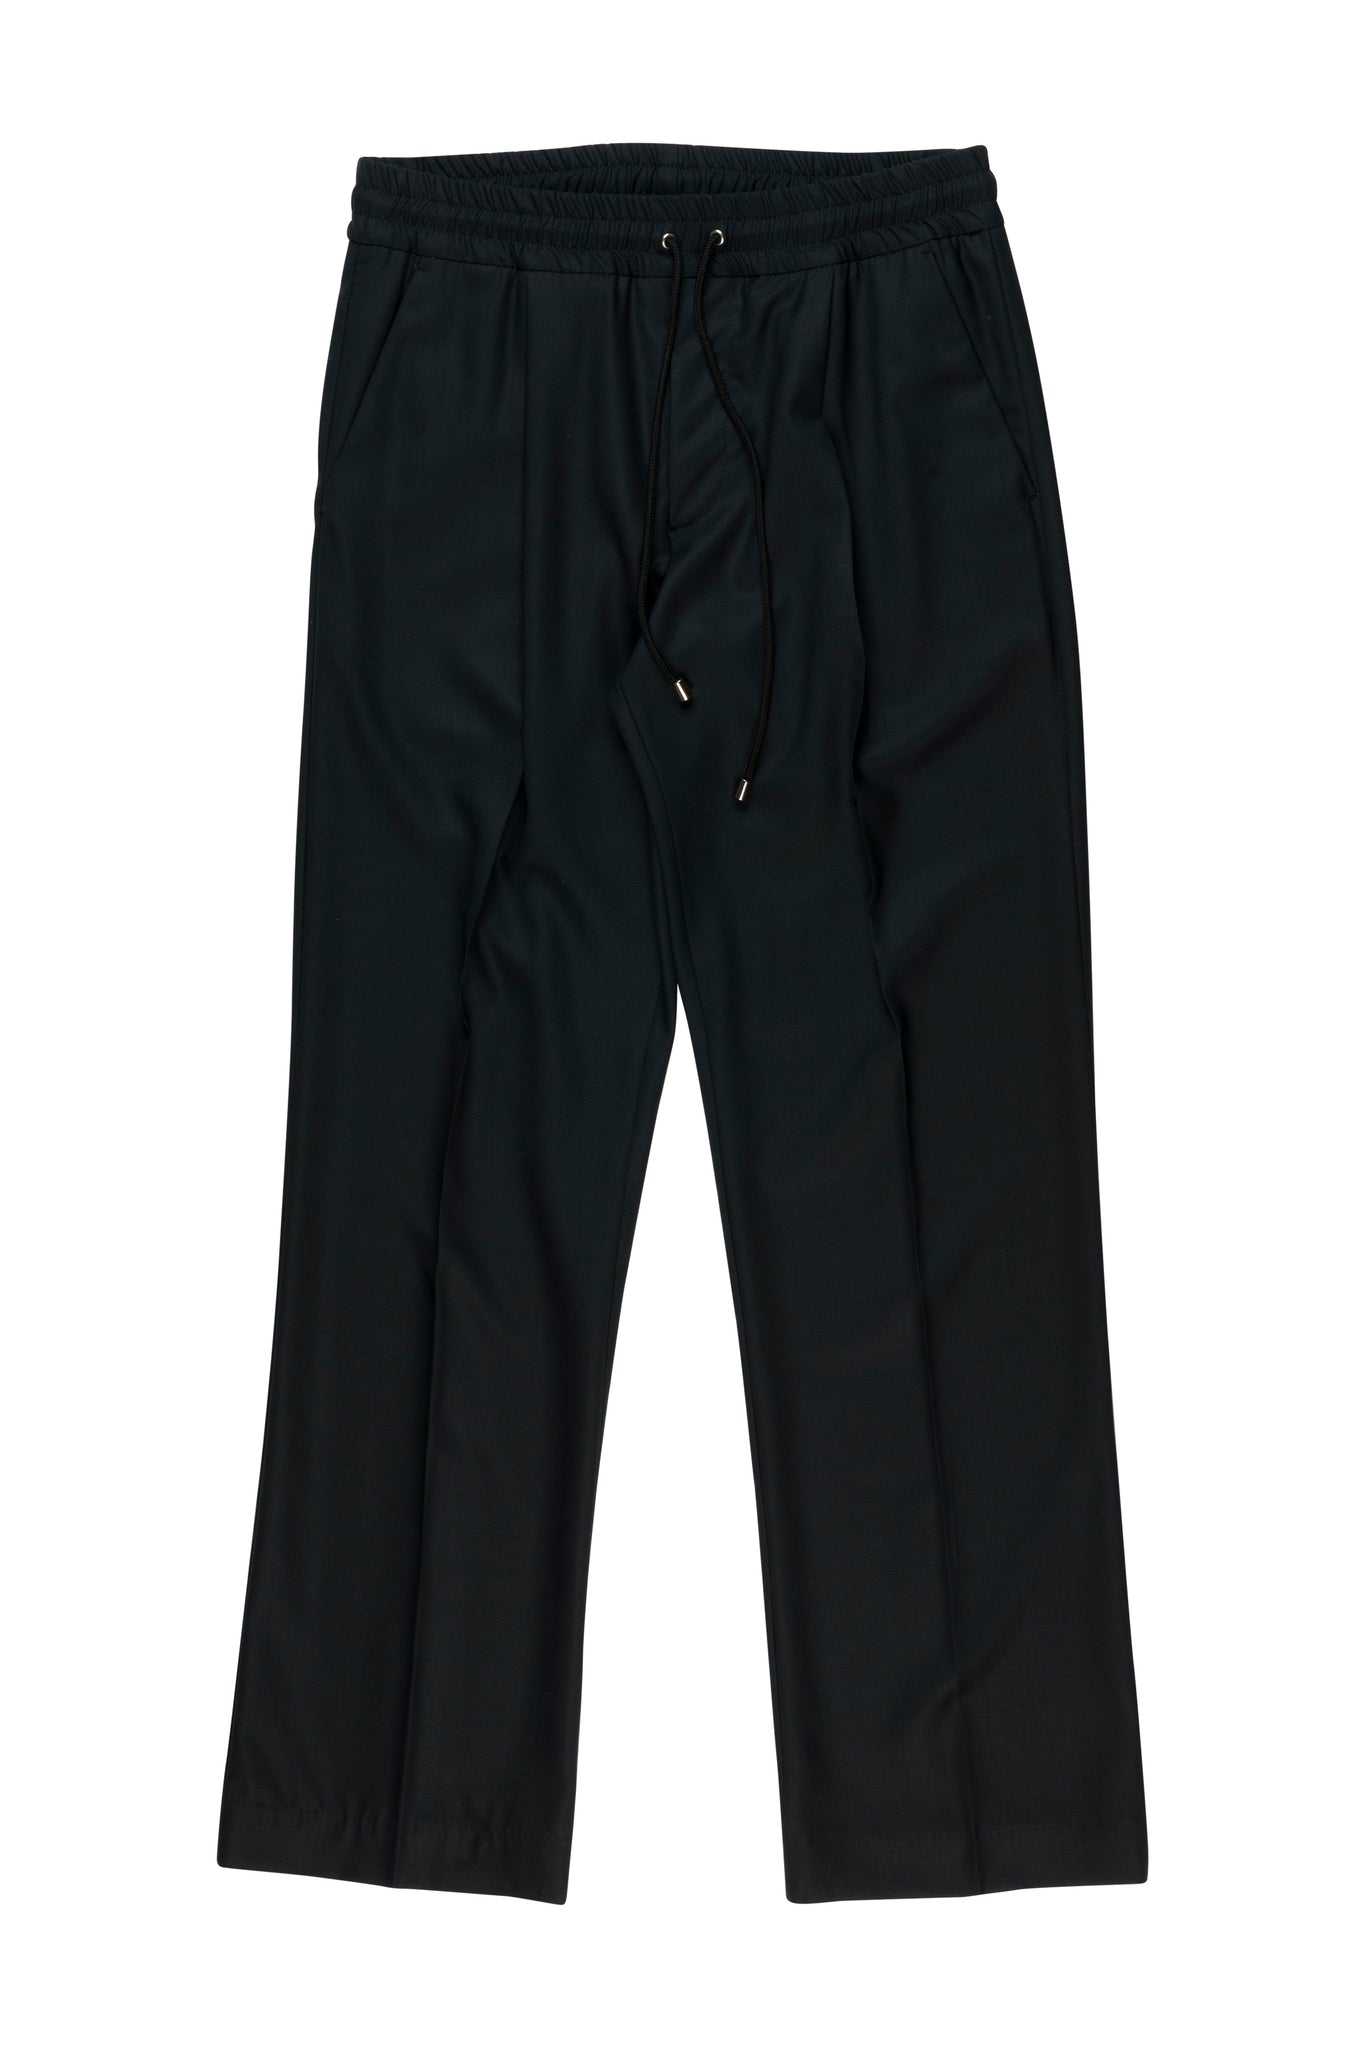 Martin Asbjørn signature drawstring pants in black wool for men